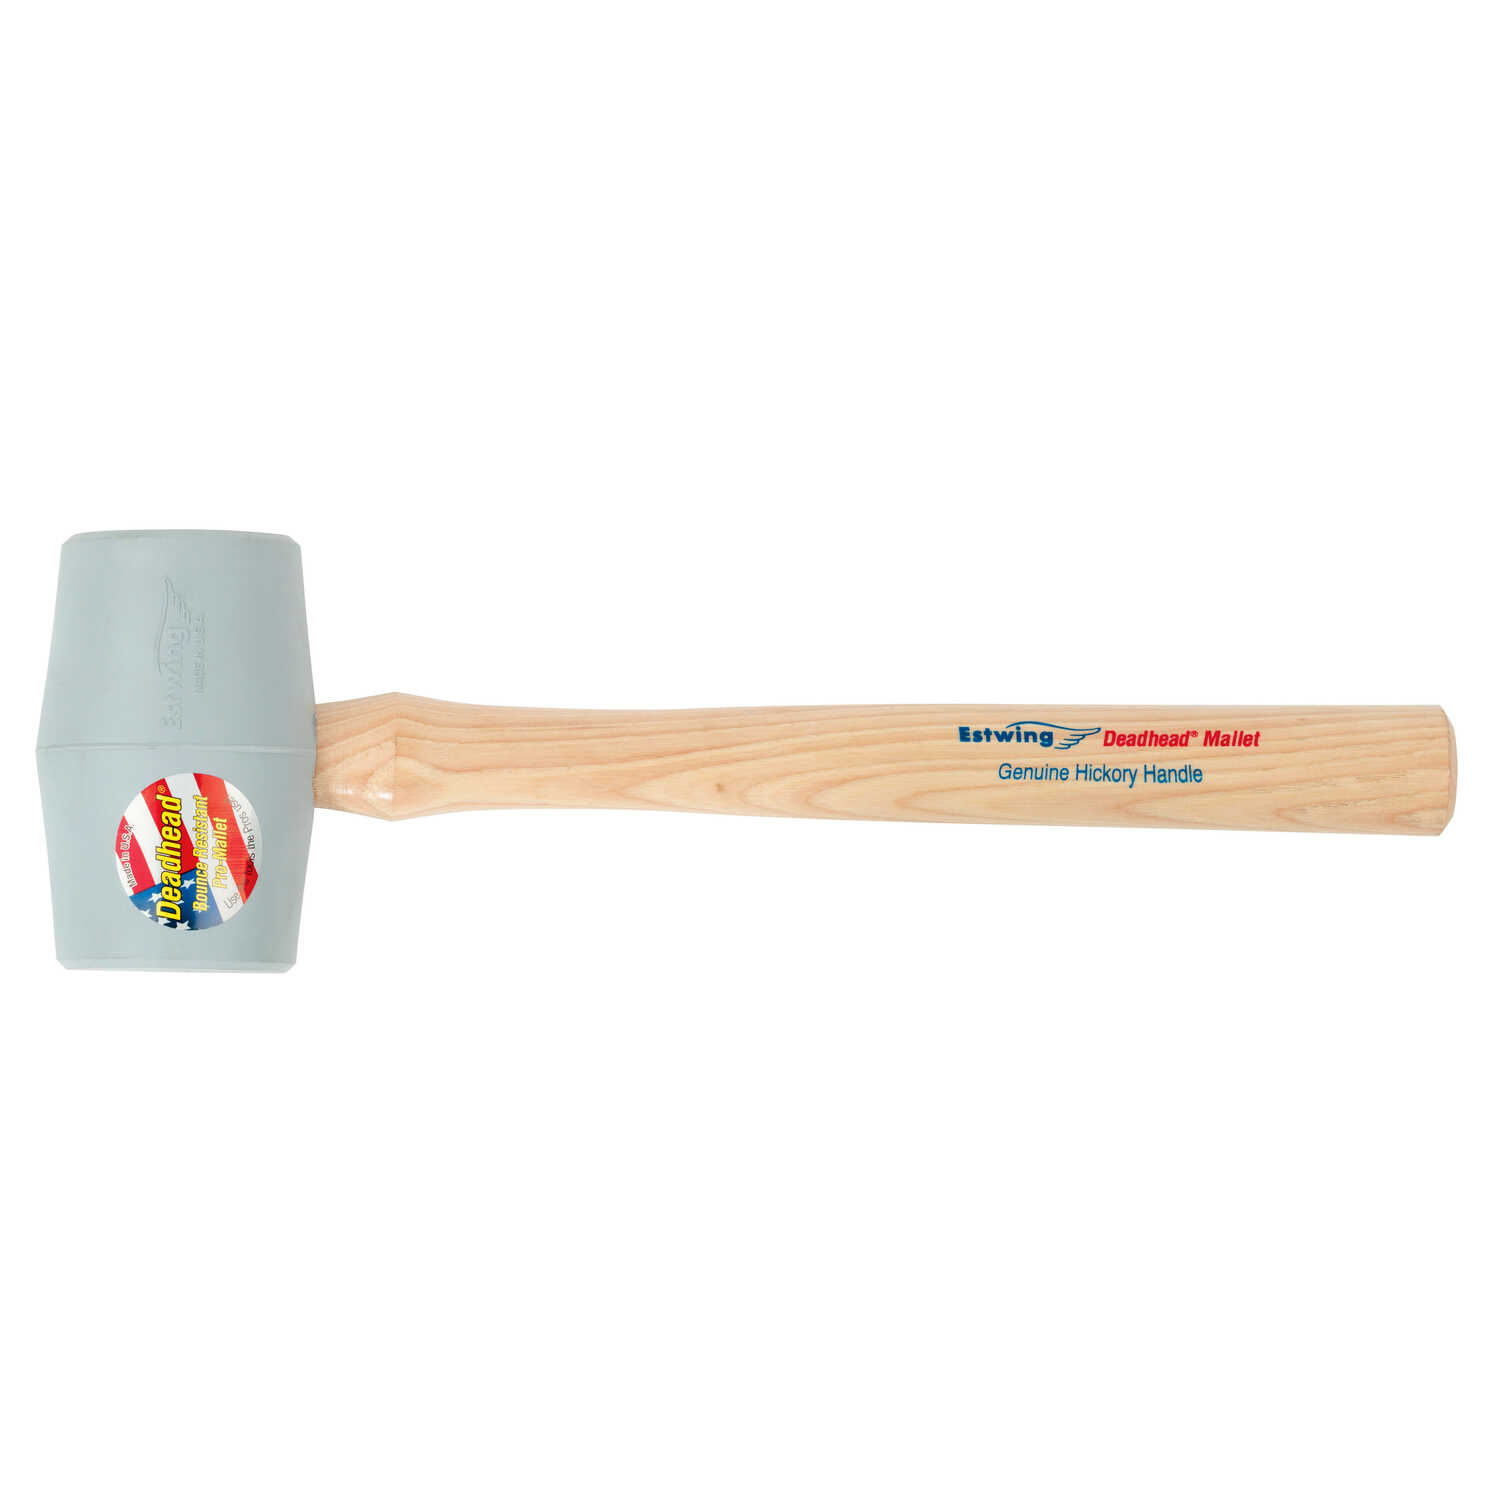 Estwing  Deadhead  18 oz. Rubber Head Mallet  15 in. L x 2.5 in. Dia.